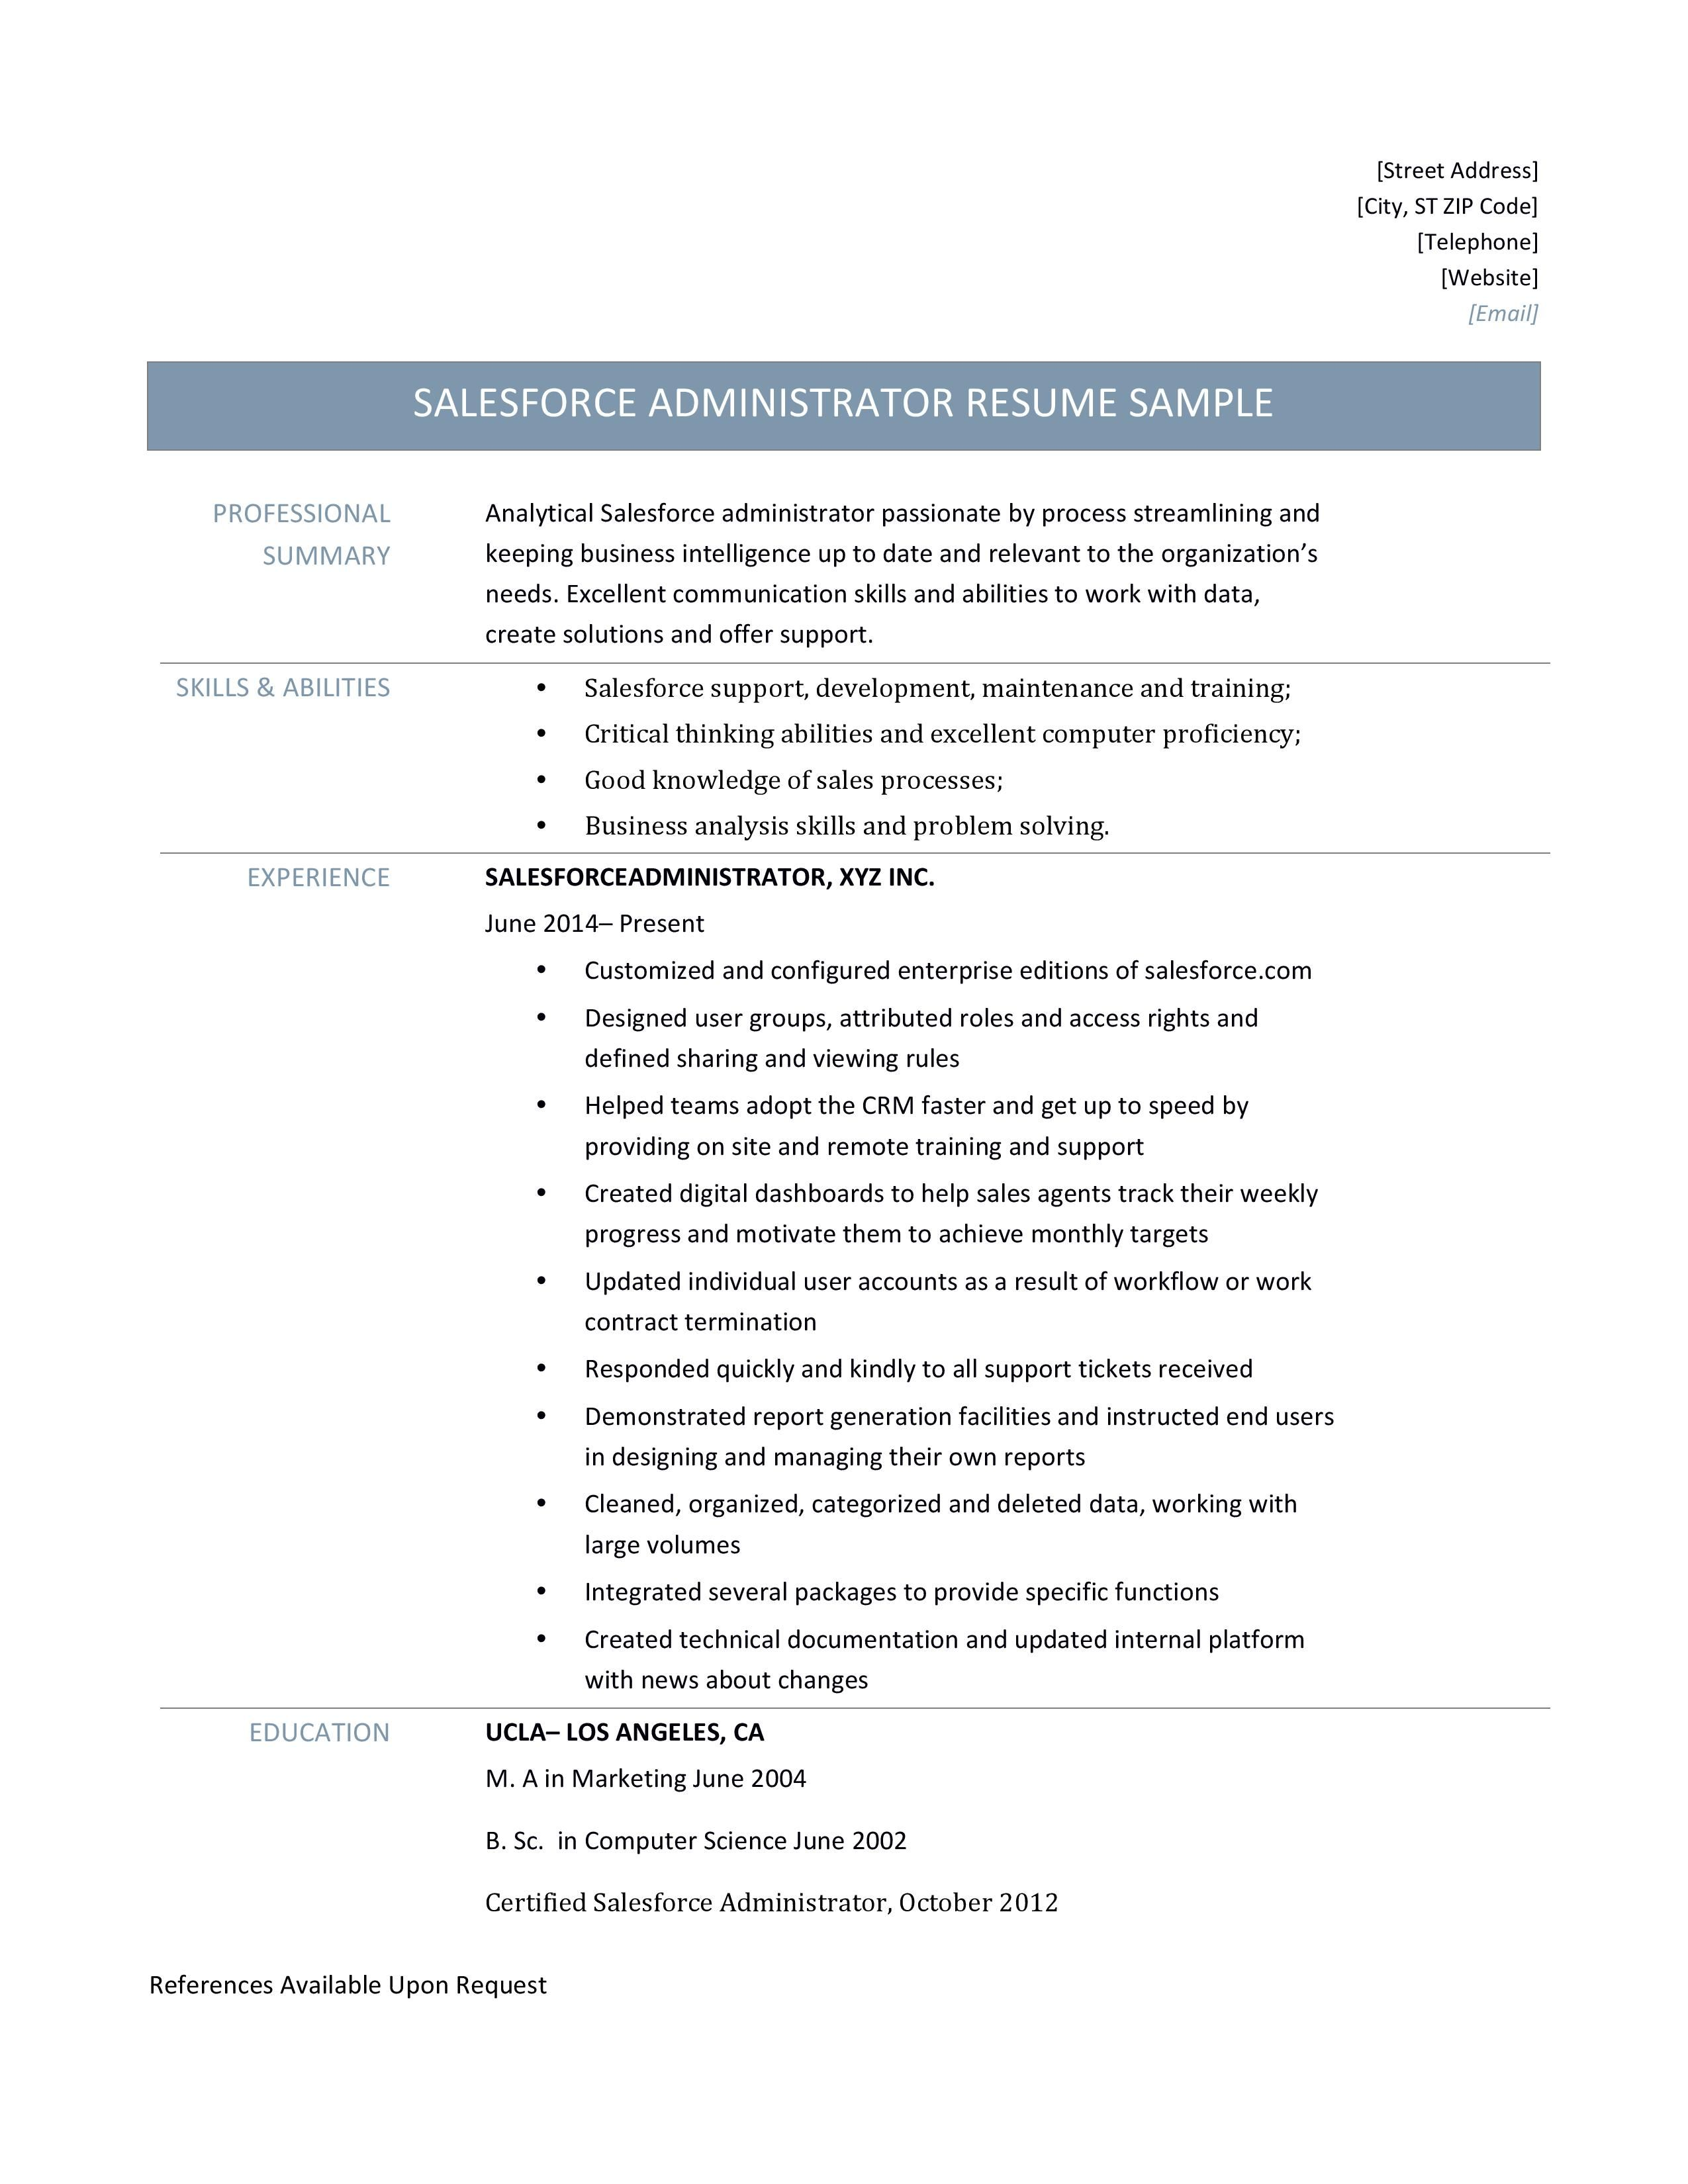 Sales Force Administrator Resume Template Salesforce